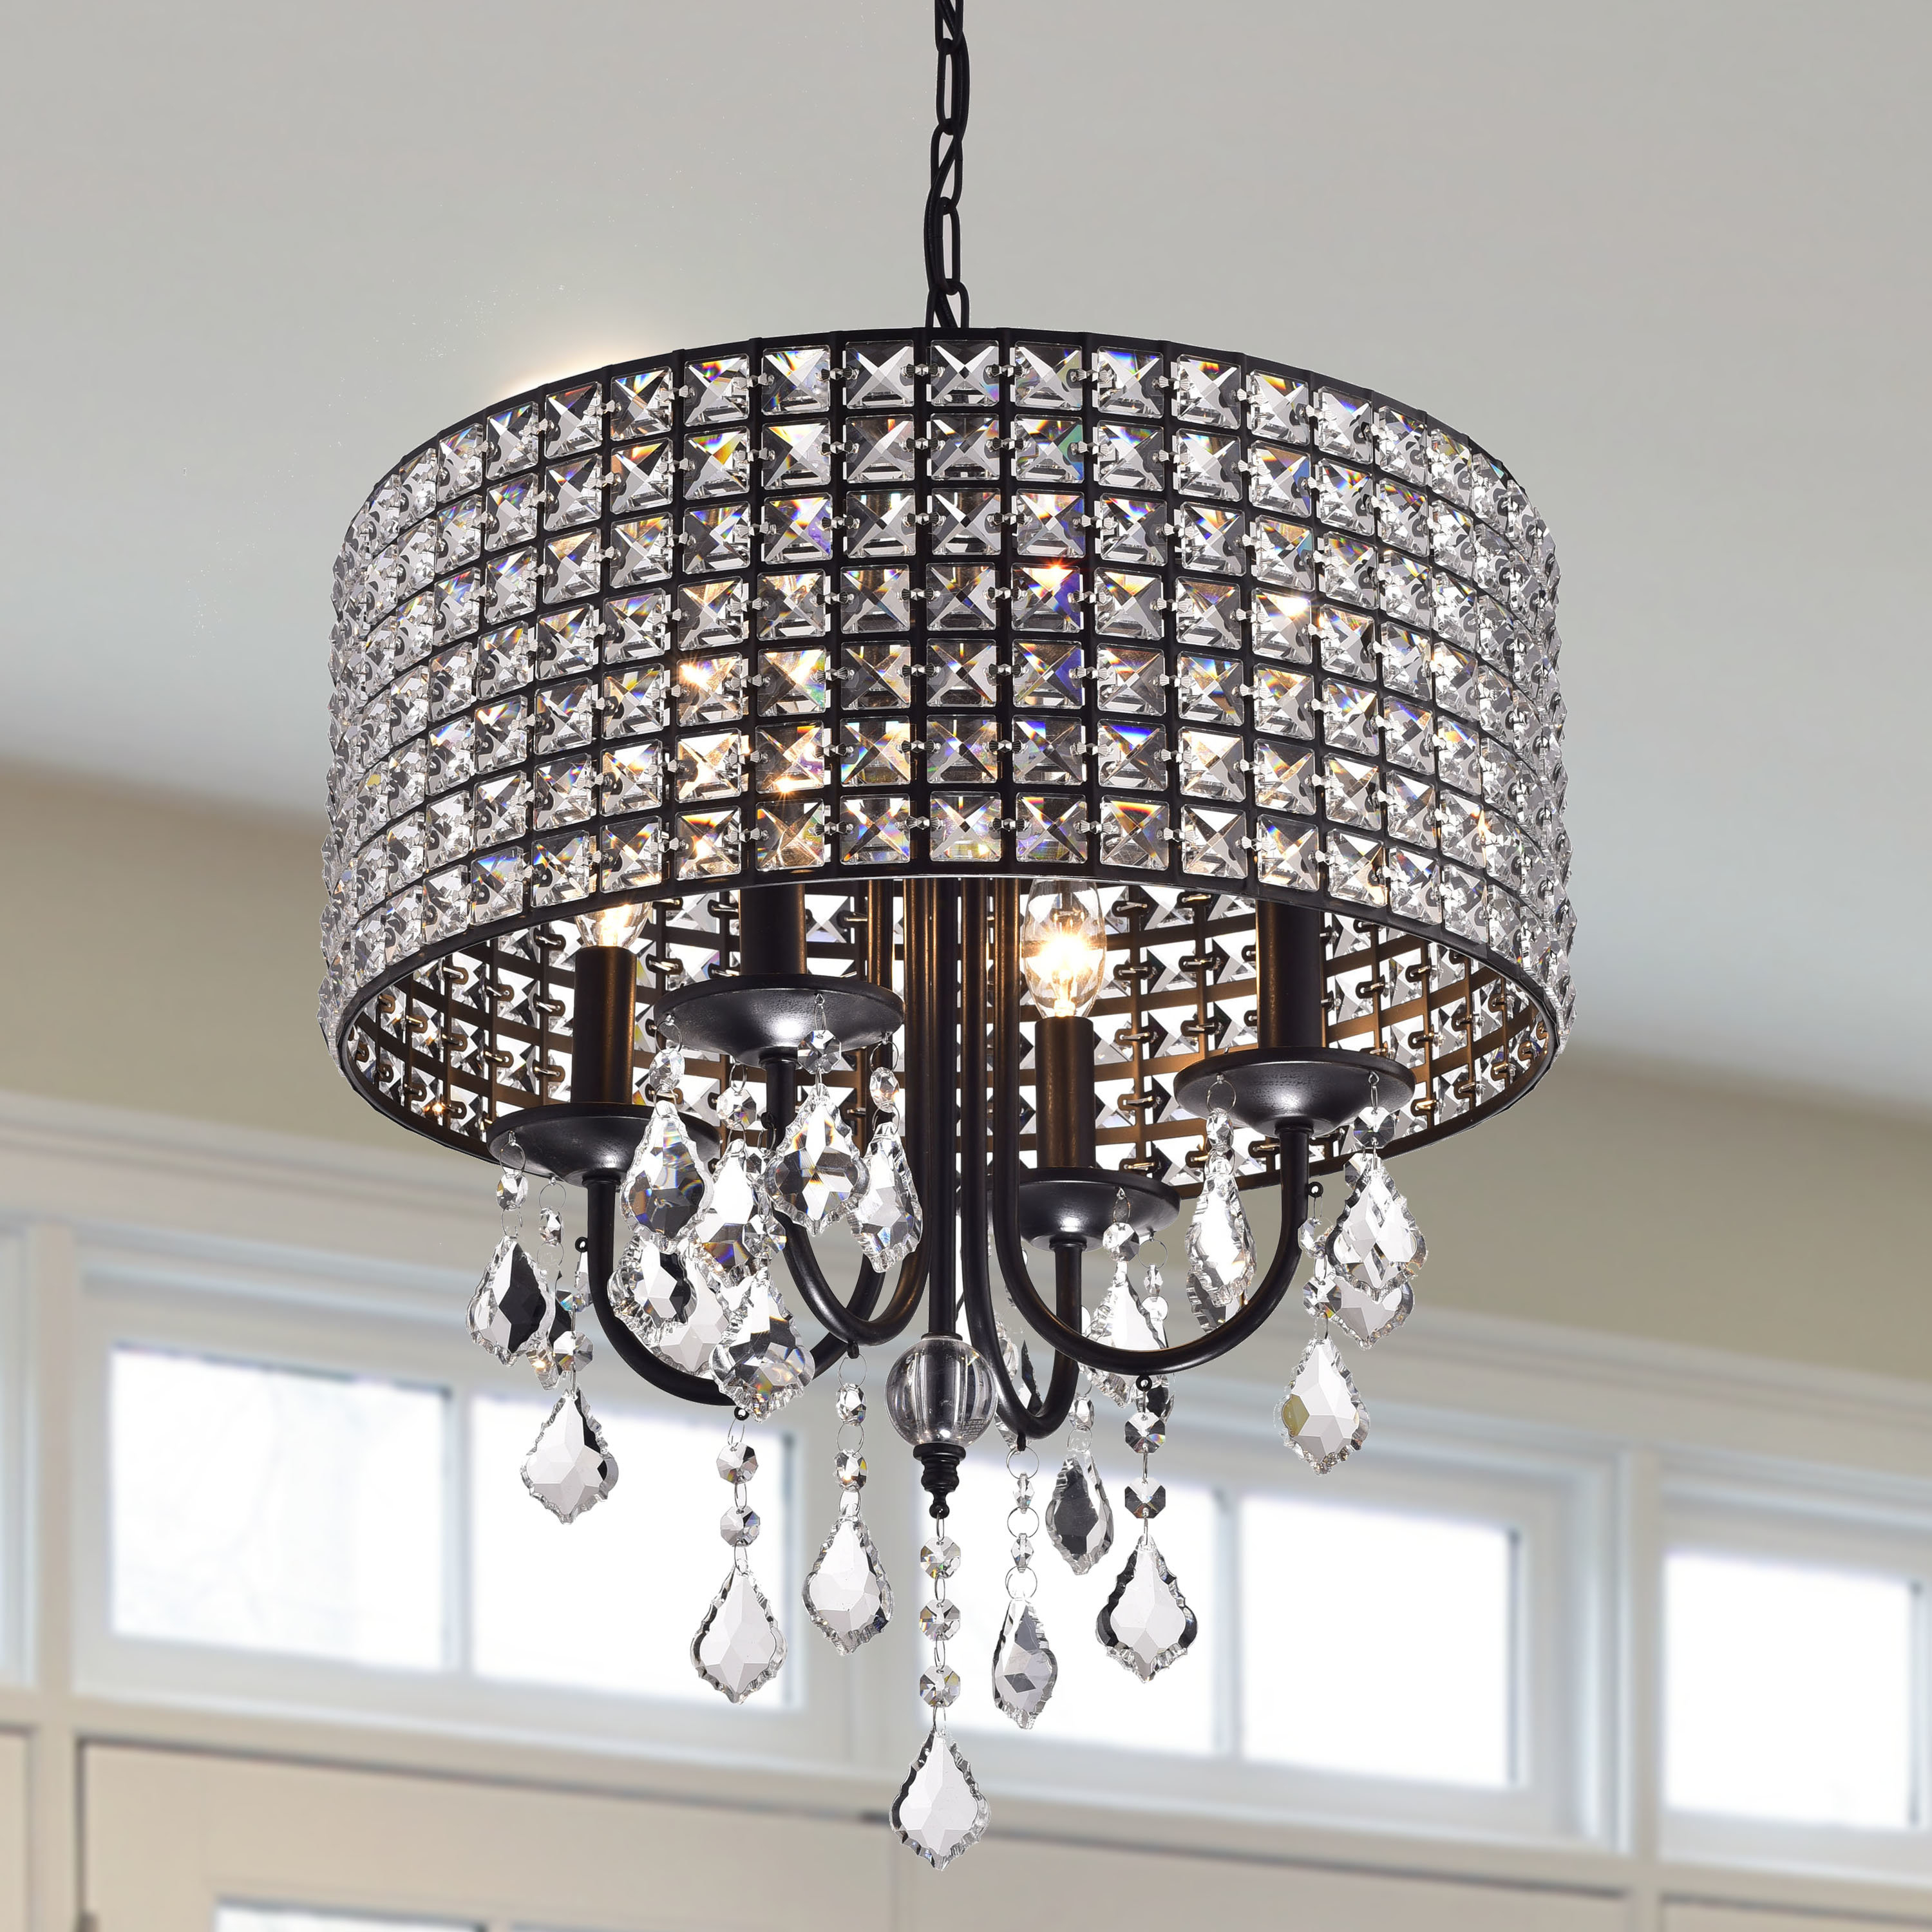 2020 Albano 4 Light Crystal Chandelier With Regard To Von 4 Light Crystal Chandeliers (Gallery 2 of 20)